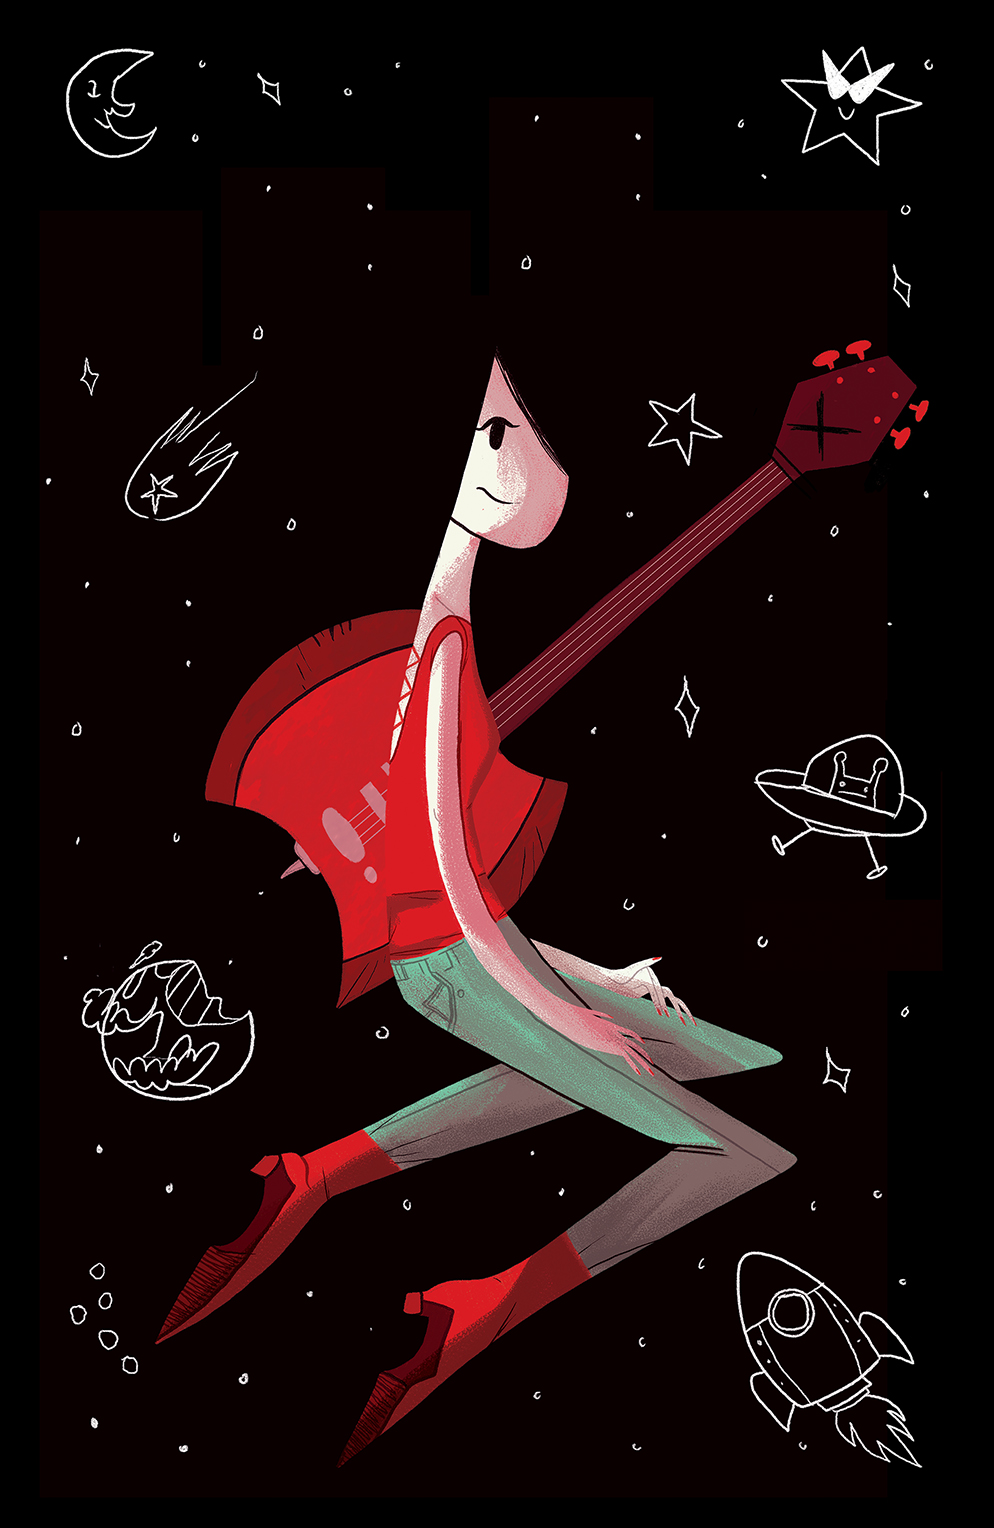 Adventure Time: Marceline Gone Adrift Cover A by Reimena Yee